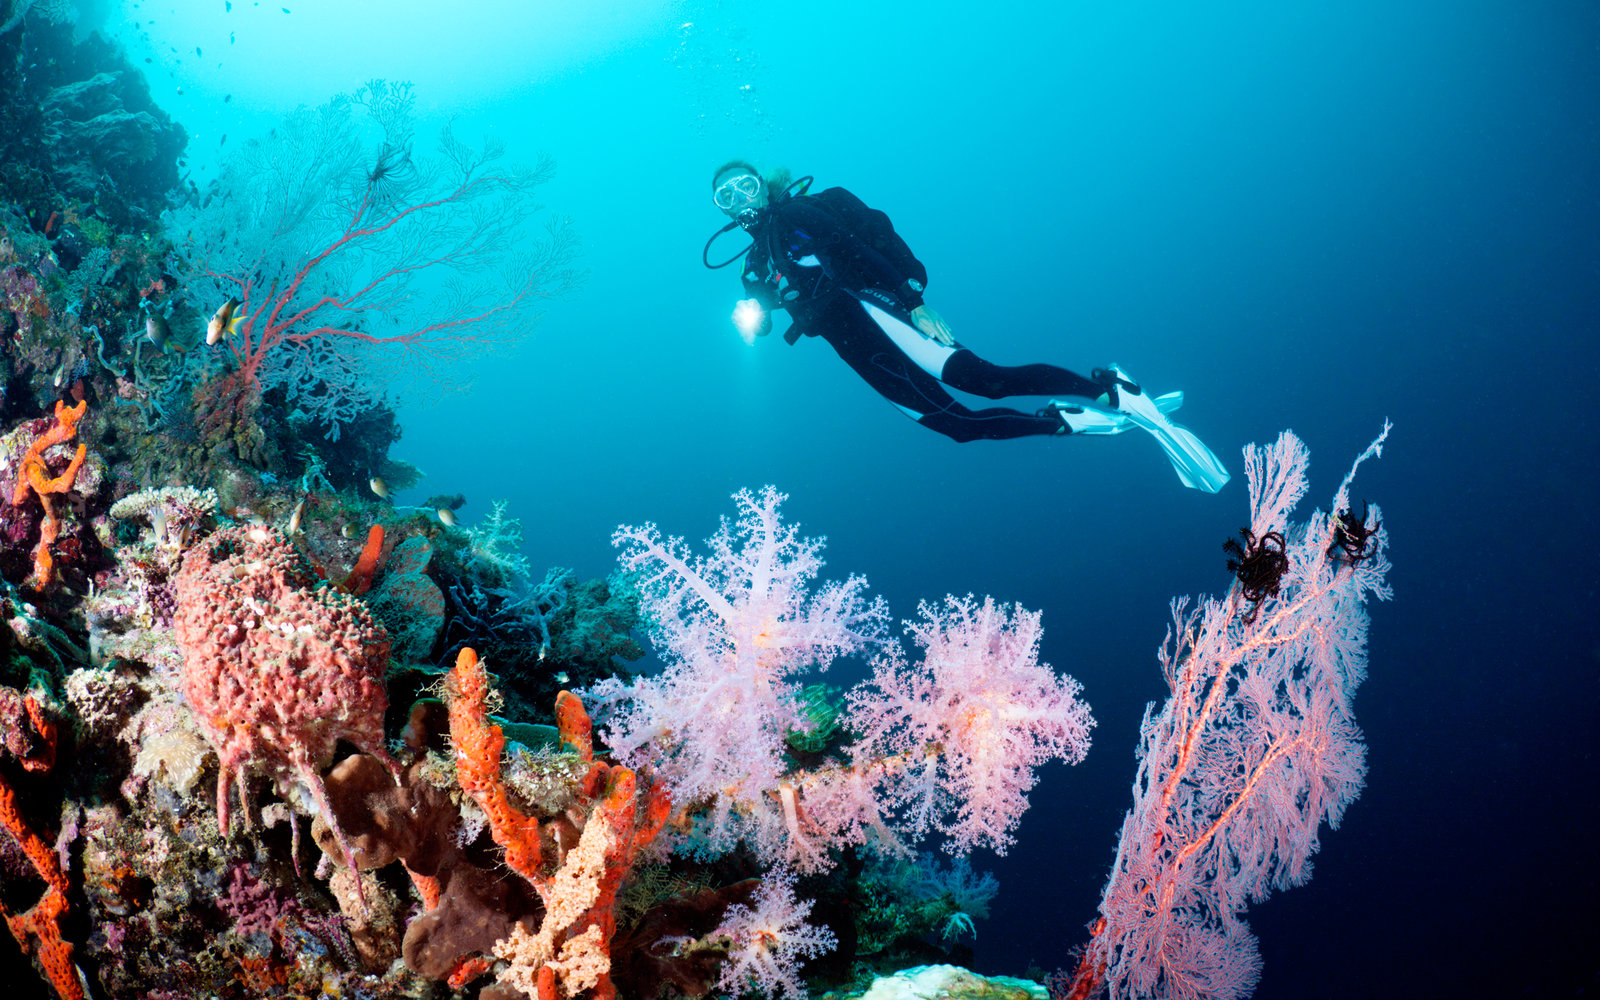 Experience the beauty of Coral Reef with this 360-degree underwater tour